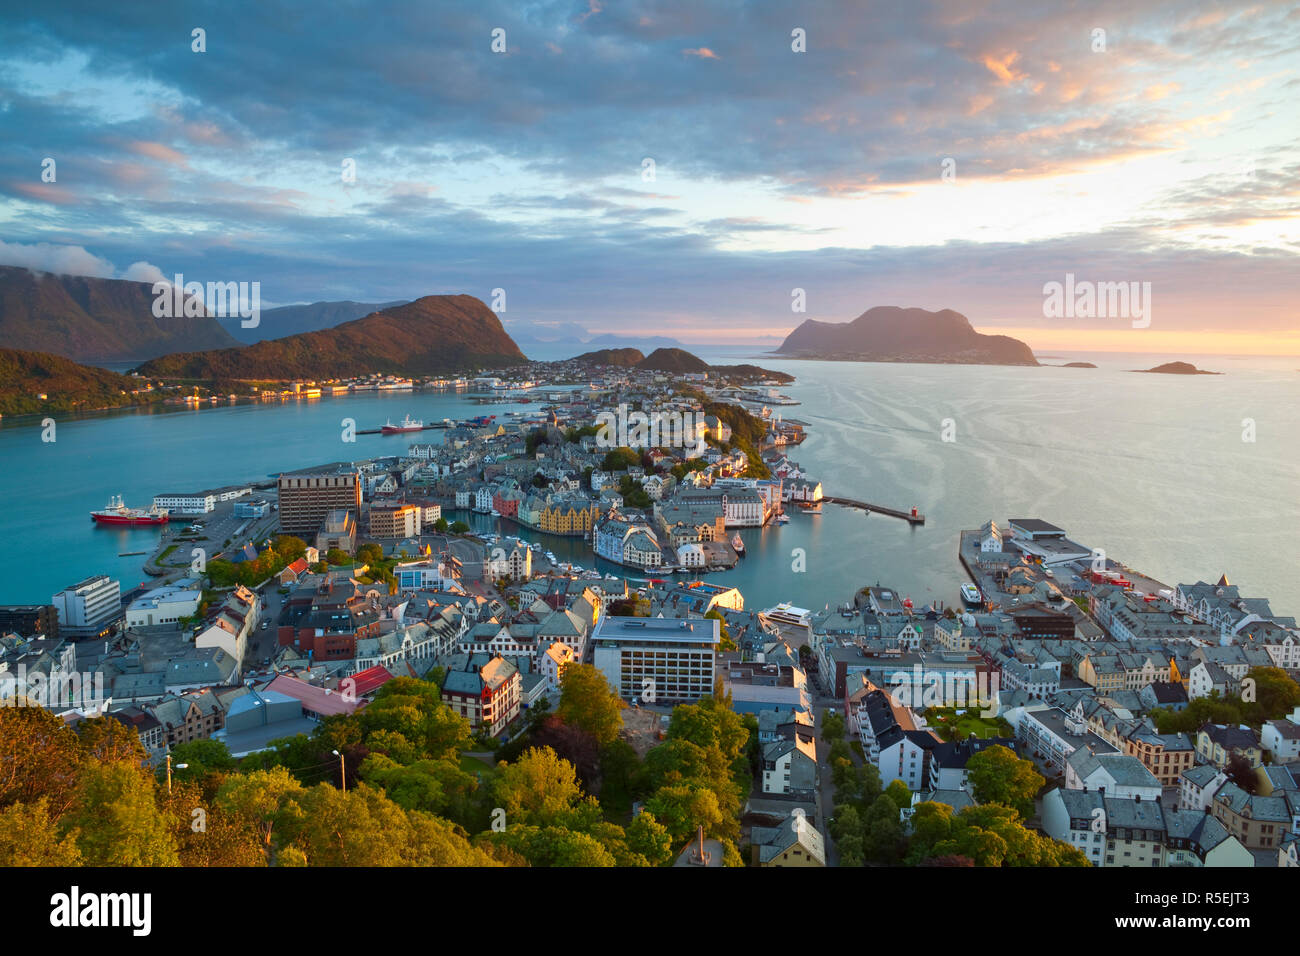 Elevated view over Alesund, Sunnmore, More og Romsdal, Norway - Stock Image